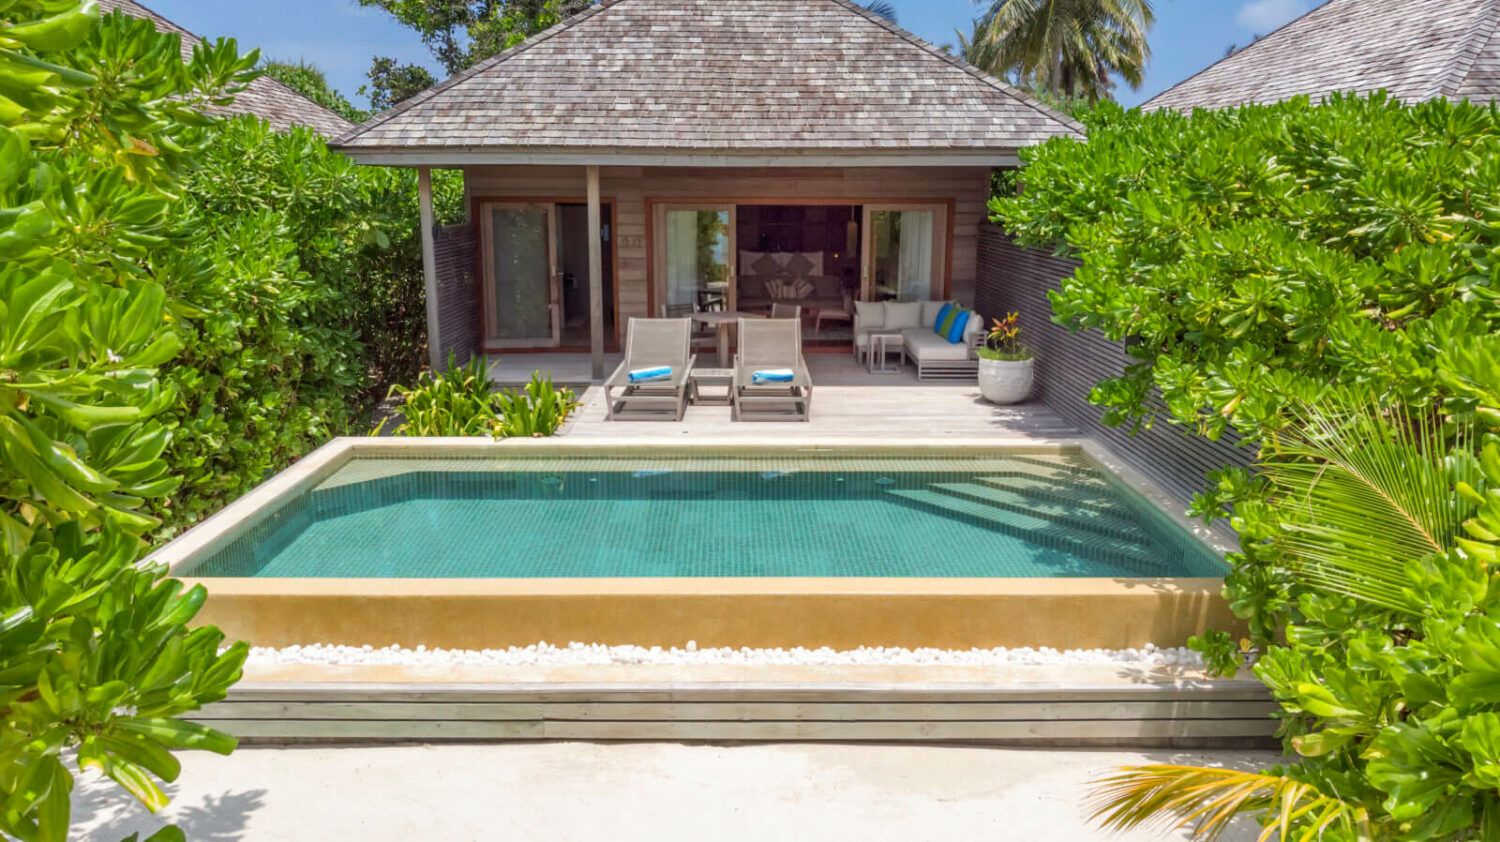 beach pool villa-hurawalhi island resort maldives